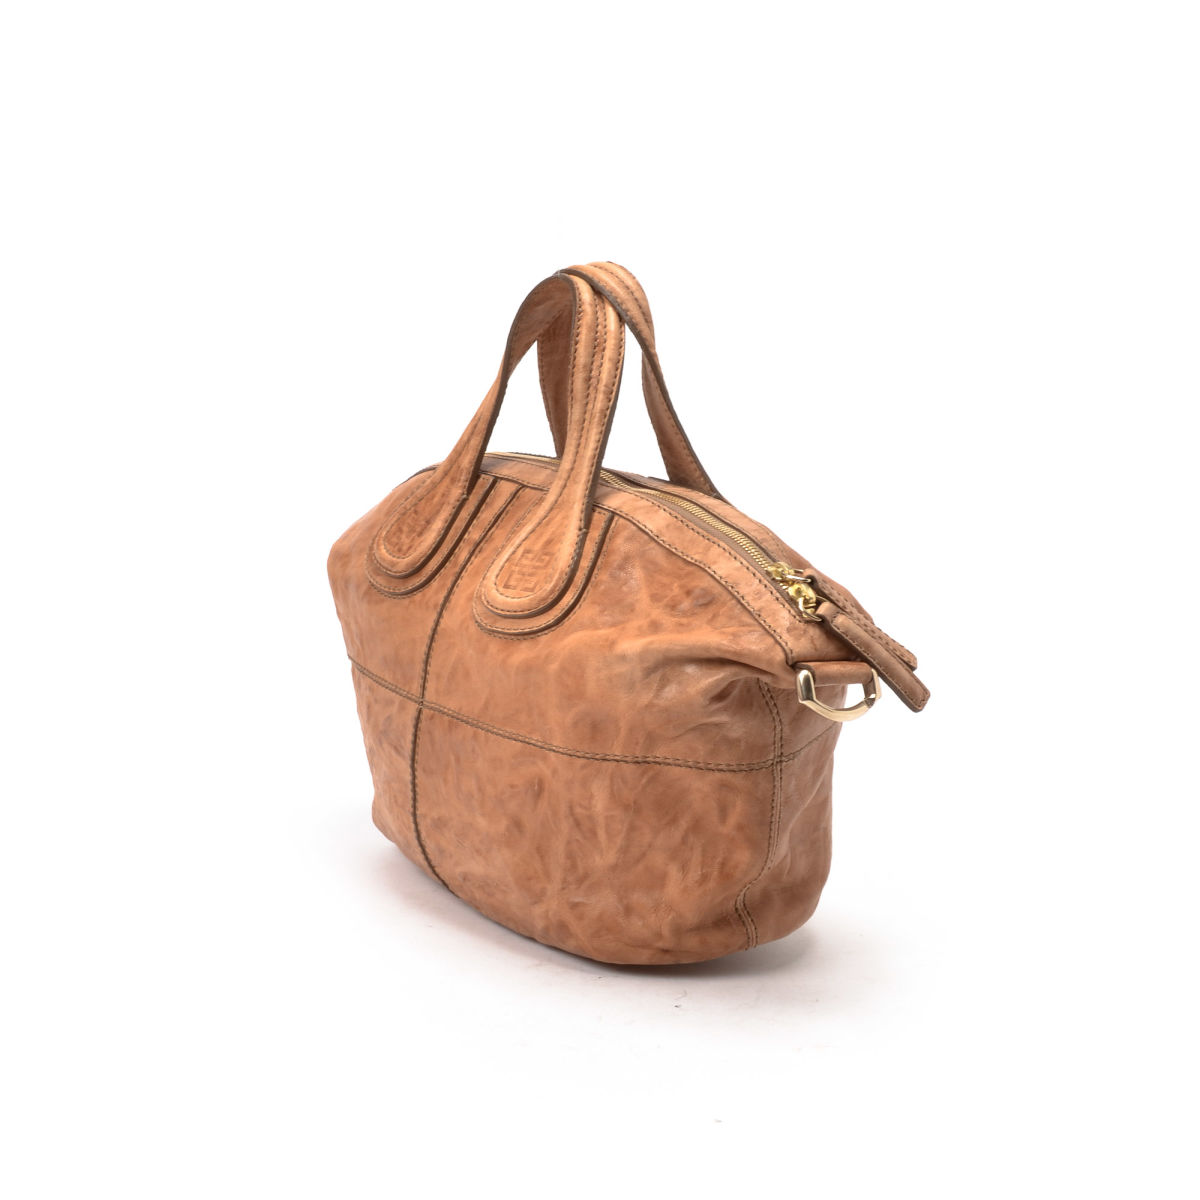 Givenchy Nightingale 2 Way Bag Leather - LXRandCo - Pre-Owned Luxury ... 26d49f347c70b